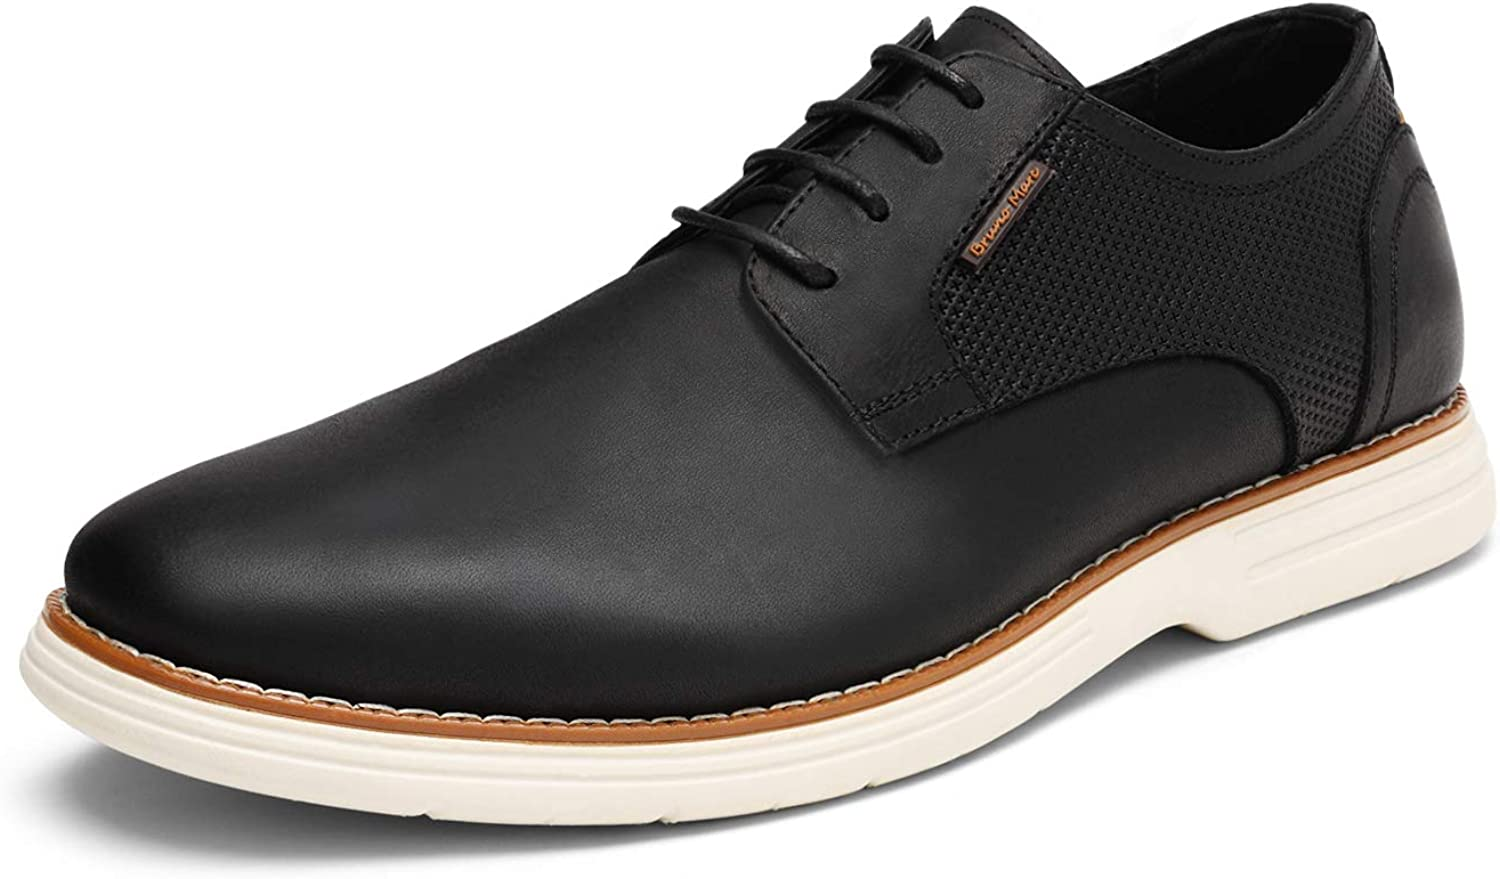 Bruno Marc Men's Oxford Dress Sneakers Casual Dress Shoes